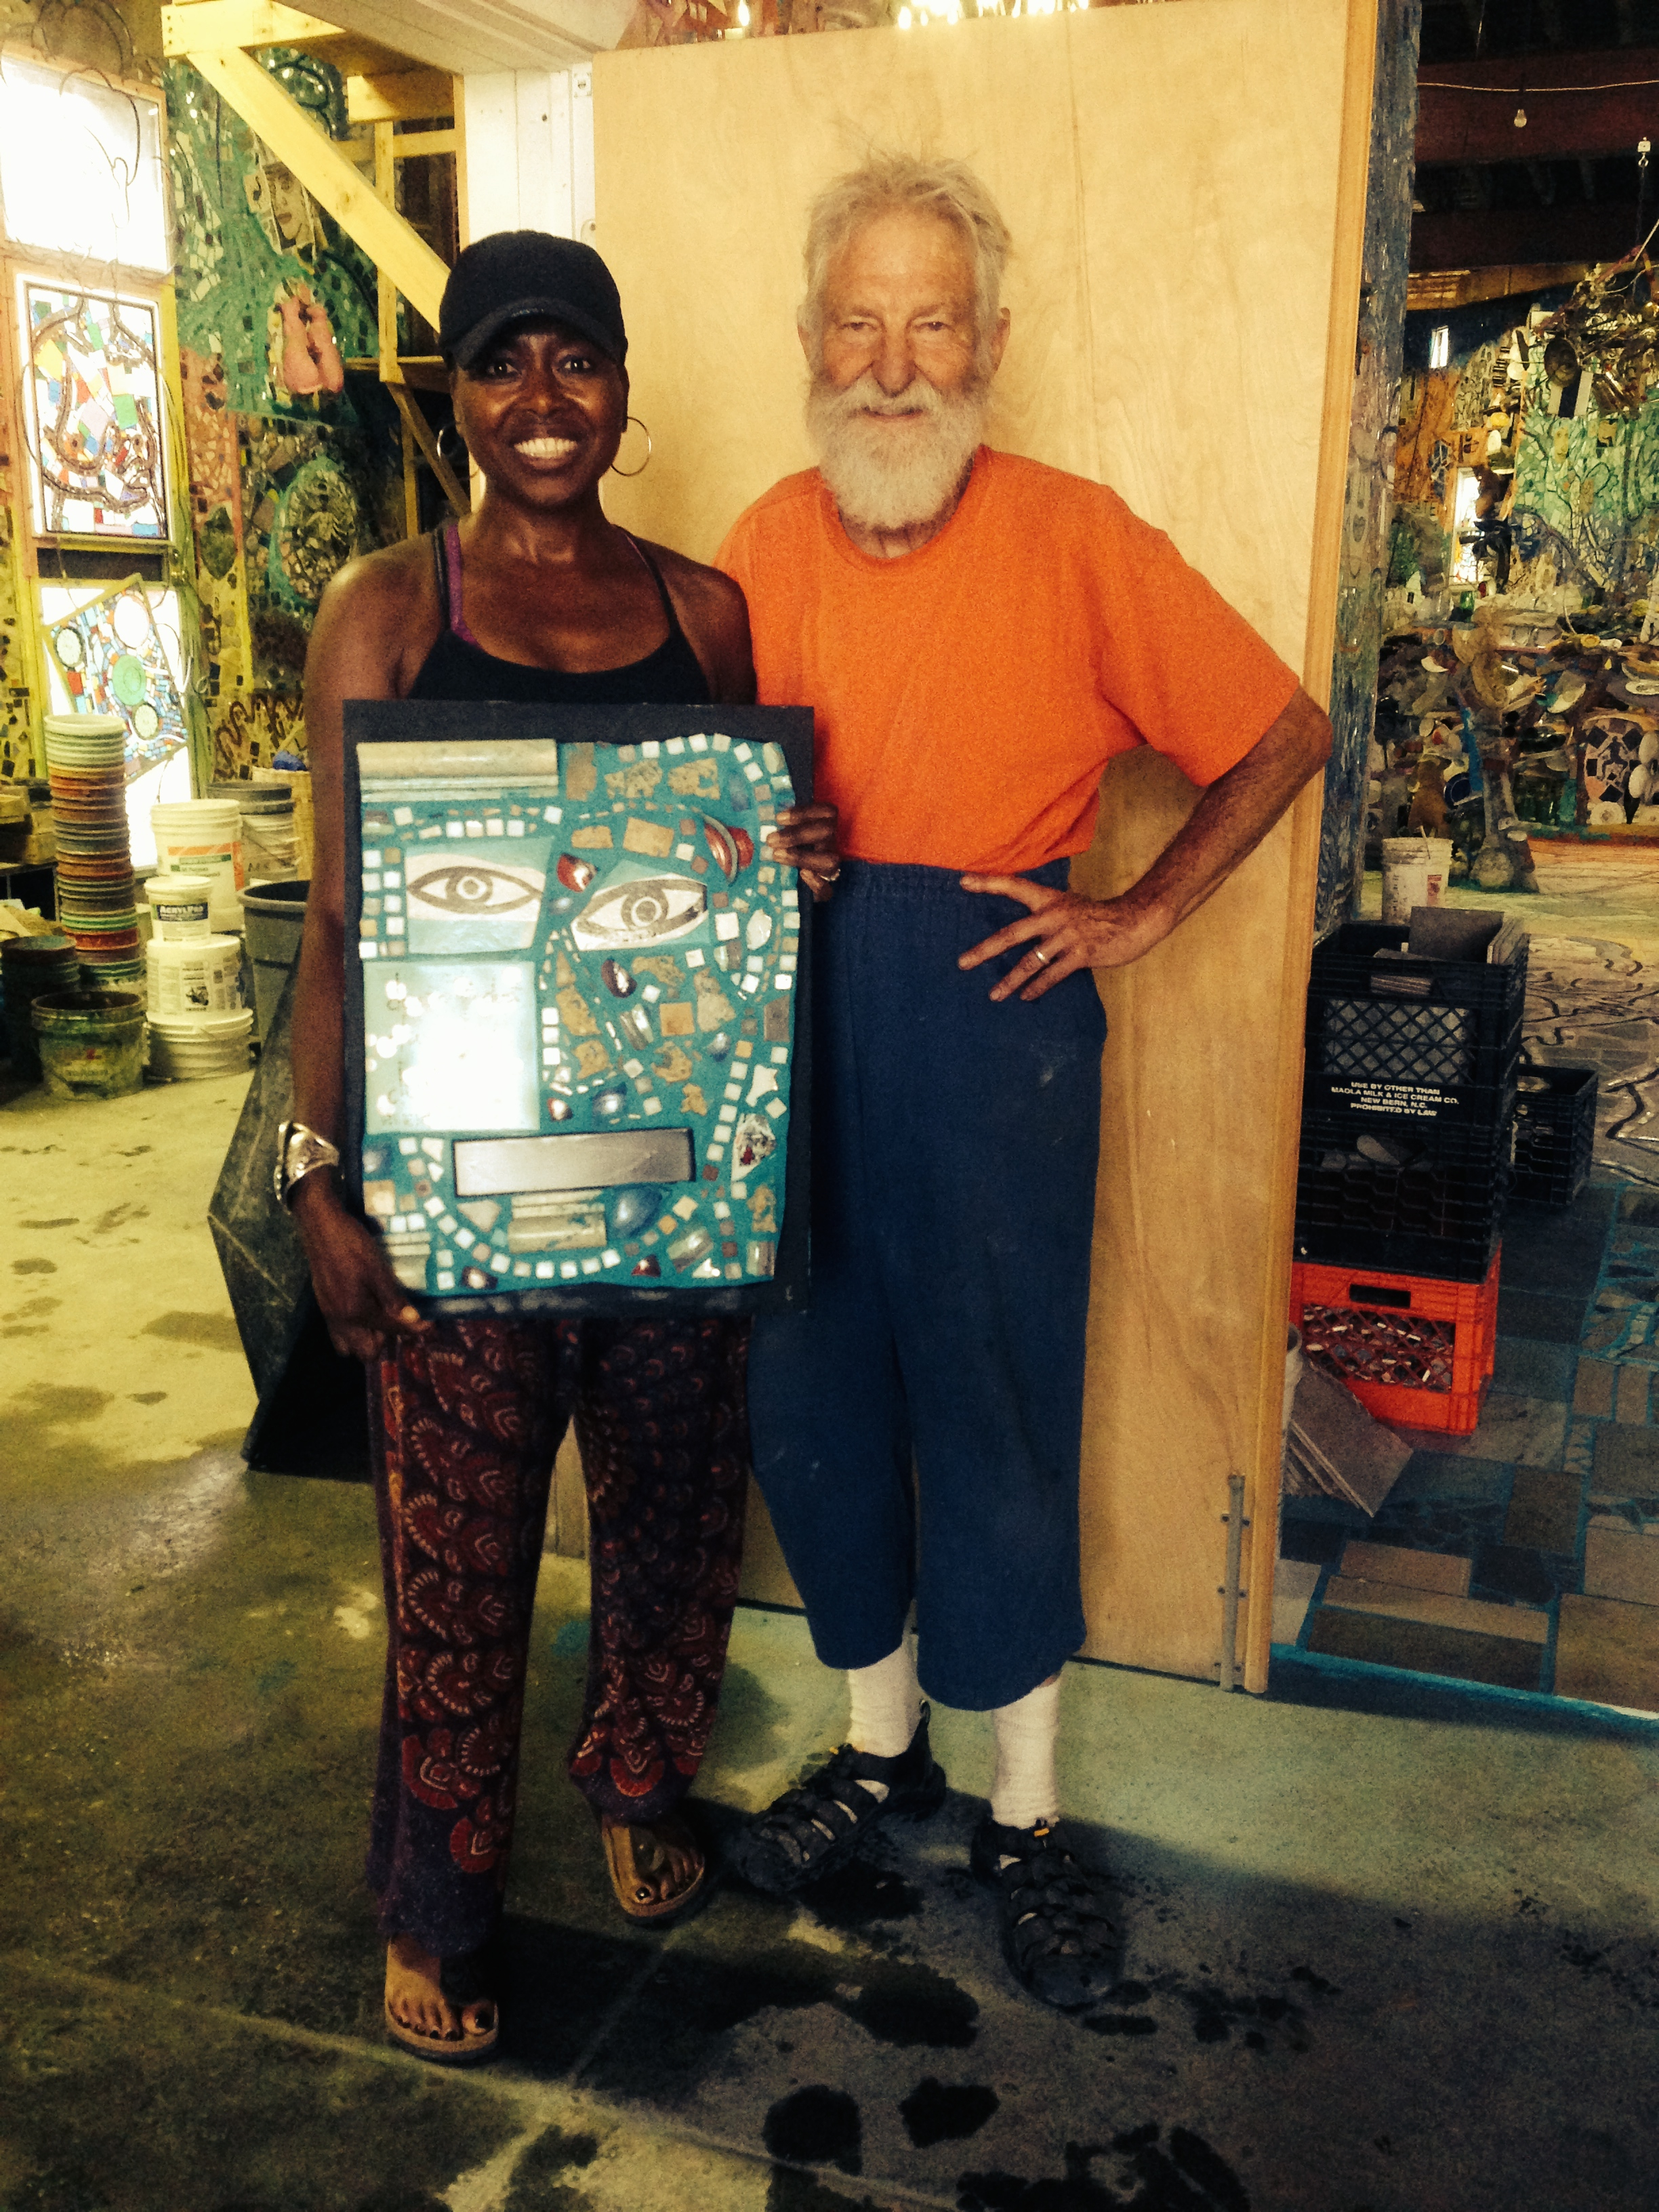 At Zagar's South Philadelphia studio after a long 2 day mosaic mural installation at 5th and Poplar. I then bought one of Zagar's small mosaic works to take home with me. Amazing. 6/30/14.